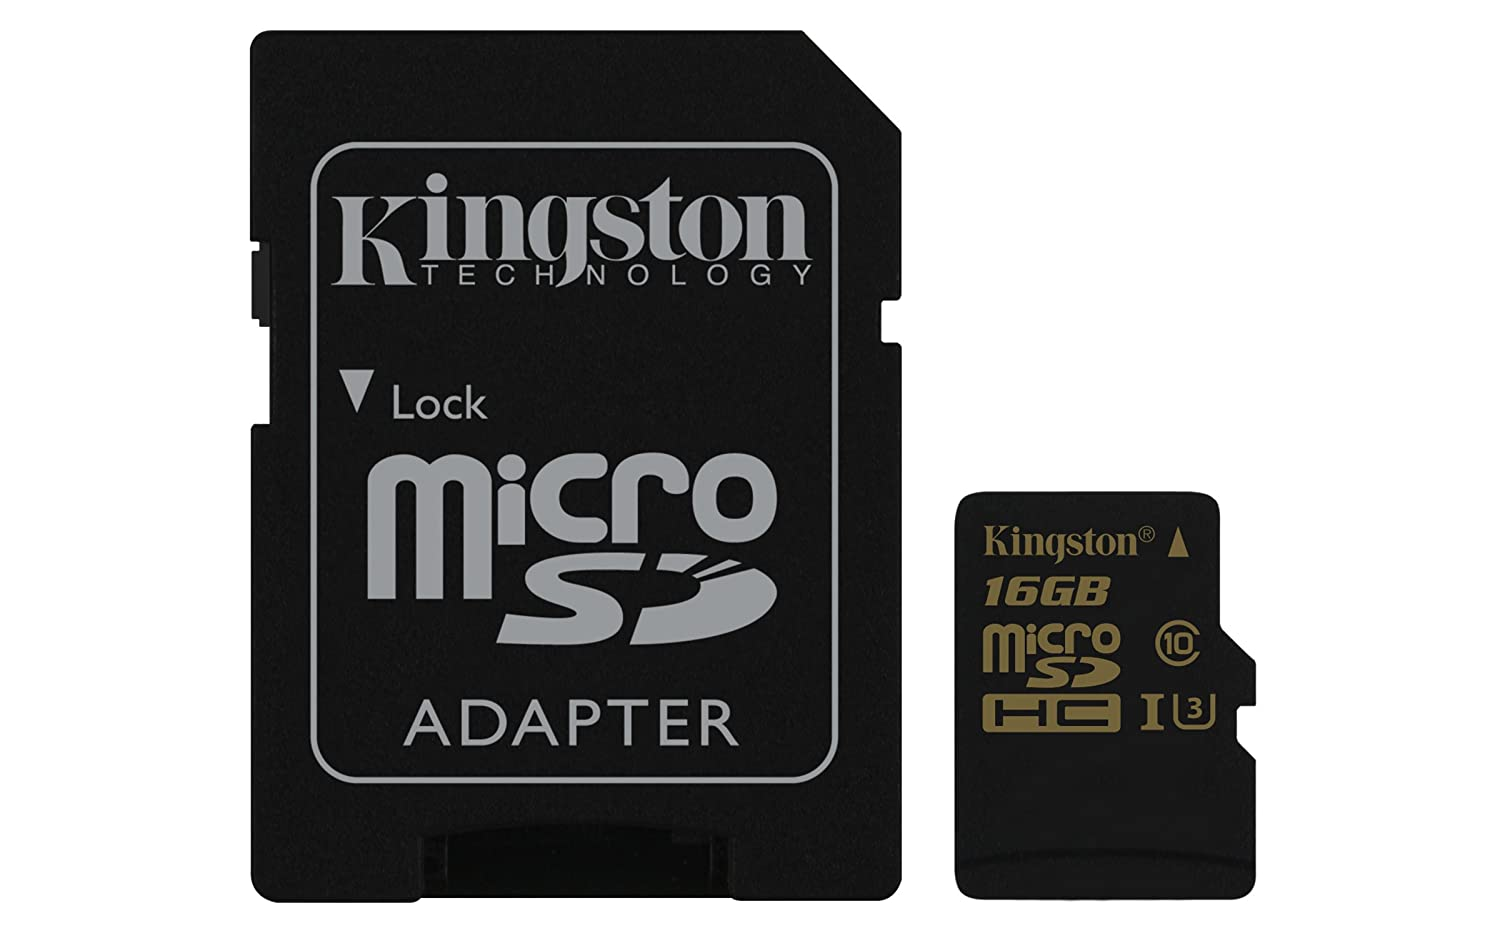 TALLA 16 GB. Kingston SDCG/16GB Gold Tarjeta de Memoria microSD de 16 GB con UHS-I Speed Class 3 (U3) y Adaptador SD